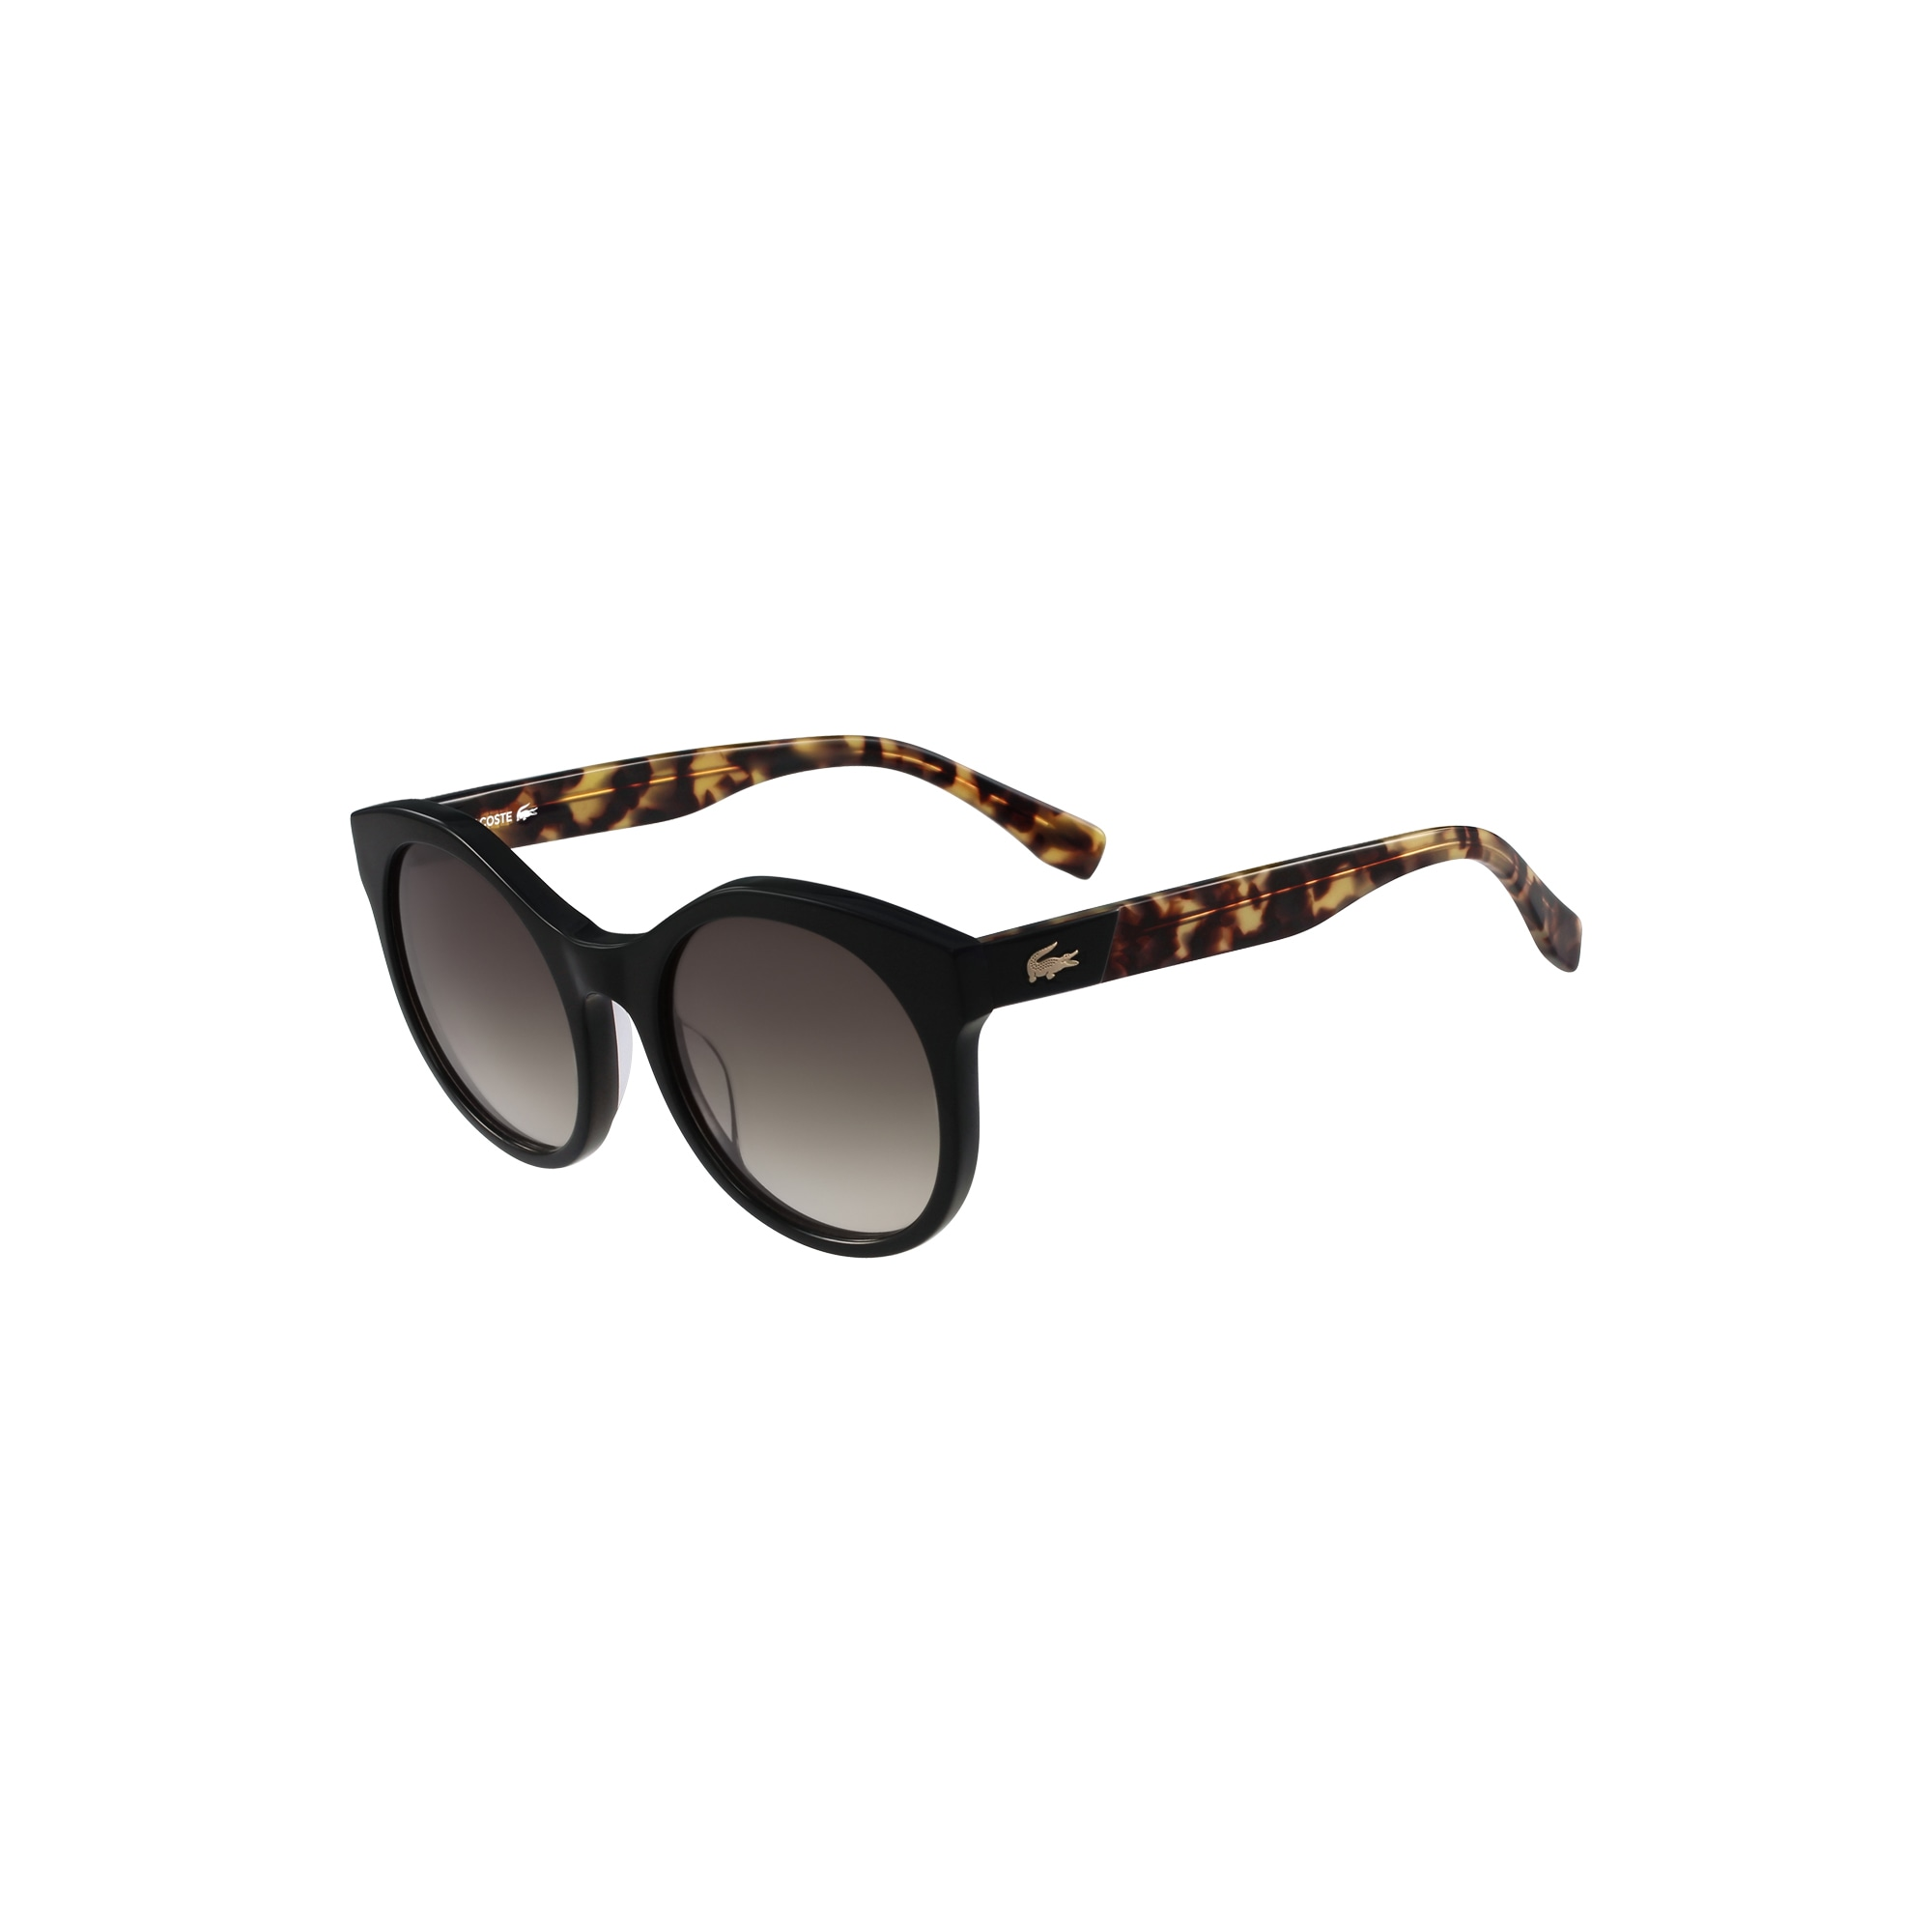 ac8d18d04d3ad Lacoste Vintage Round Sunglasses Women s Inspired UIqOwnId